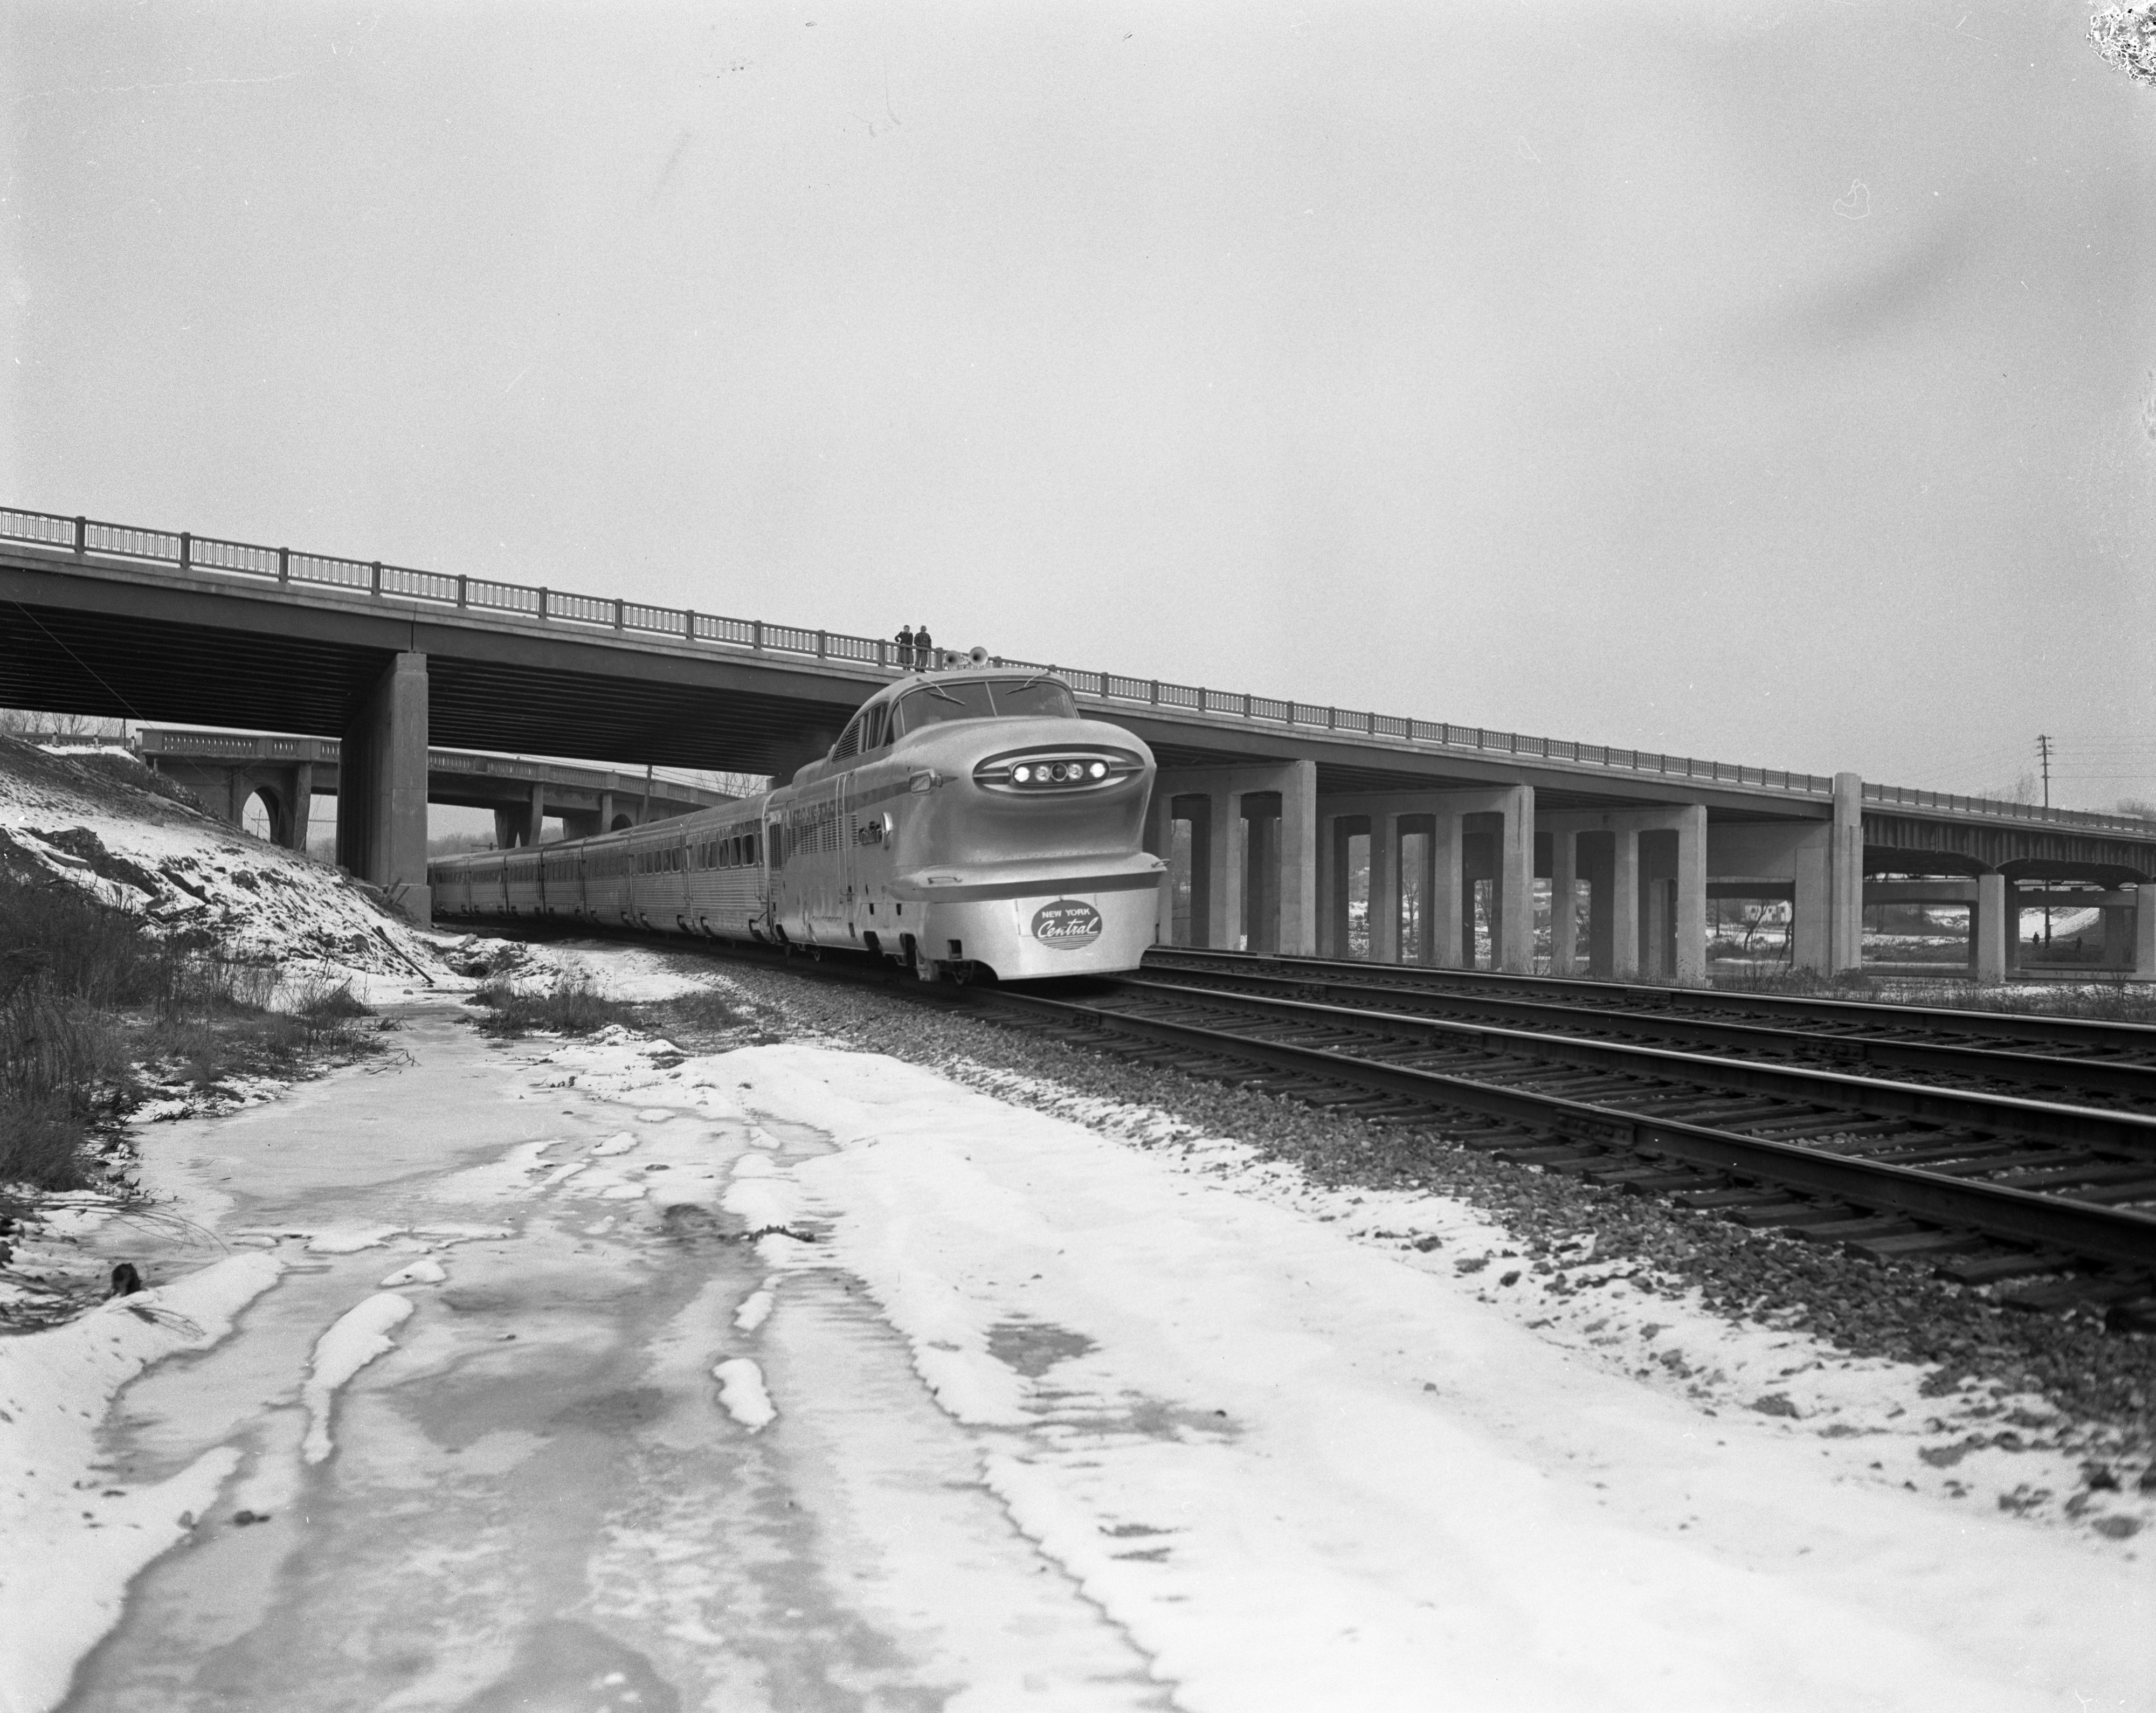 The New York Central's new Aerotrain passes under the Huron Valley Bridge, January 1956 image